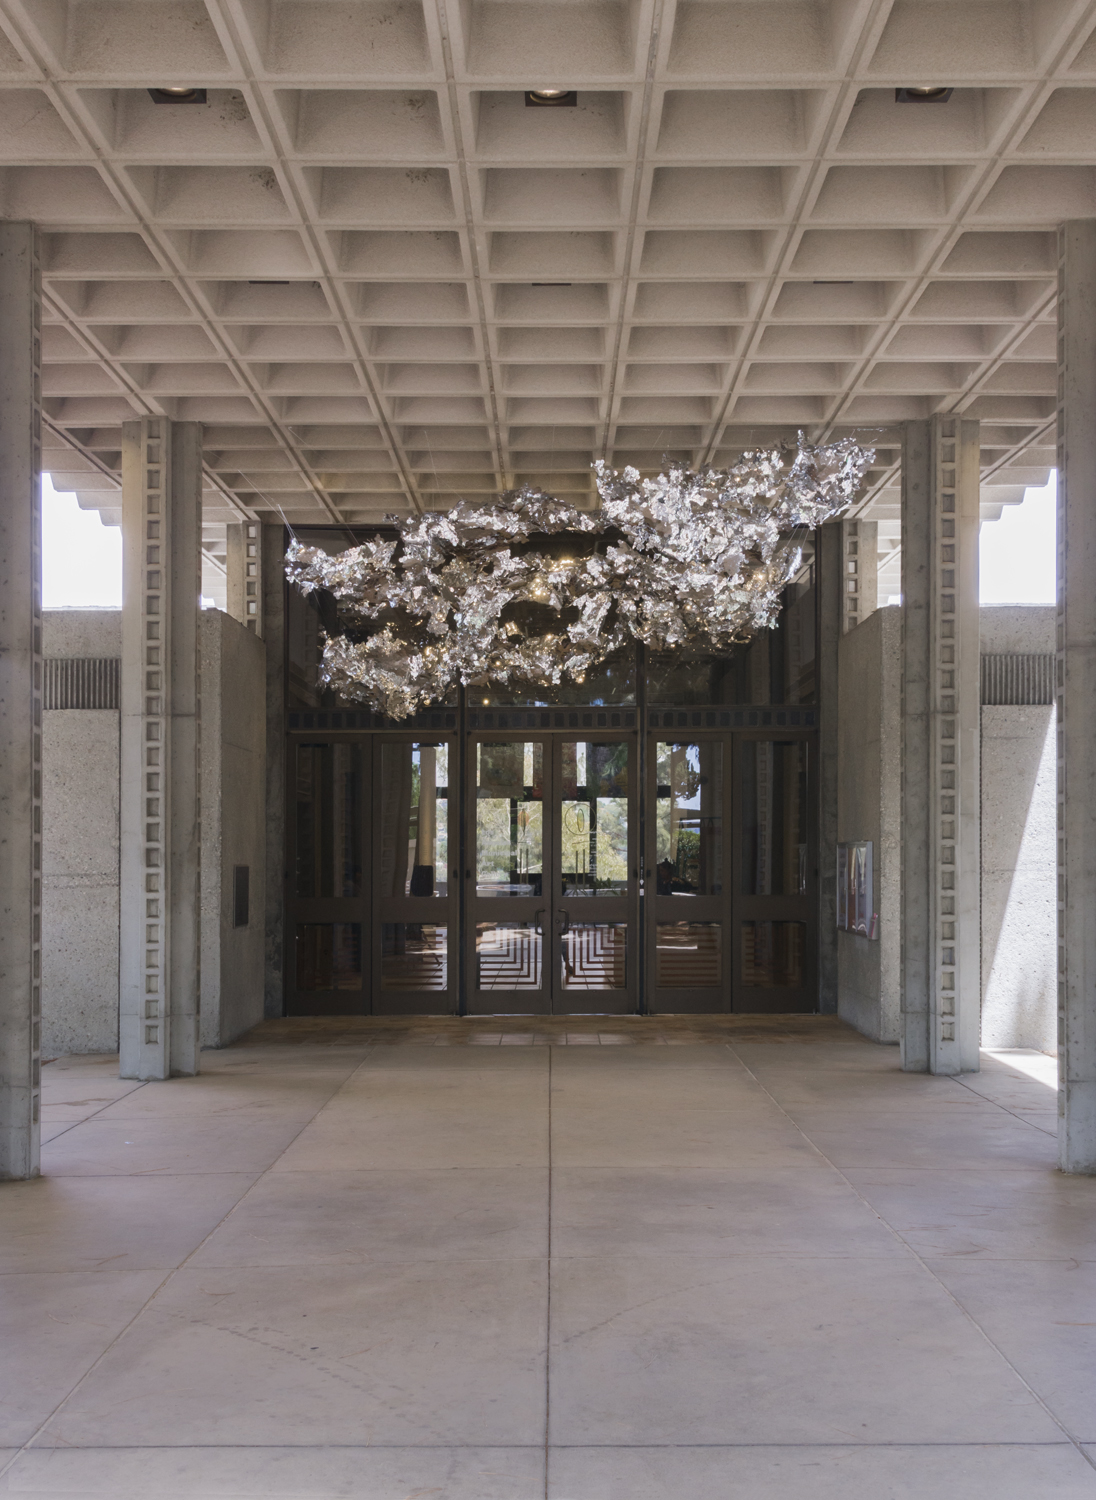 This is an artwork by the artist Olga Lah featuring silver, reflective material in a cloud-like shape hanging above the gallery's entrance doors outside.